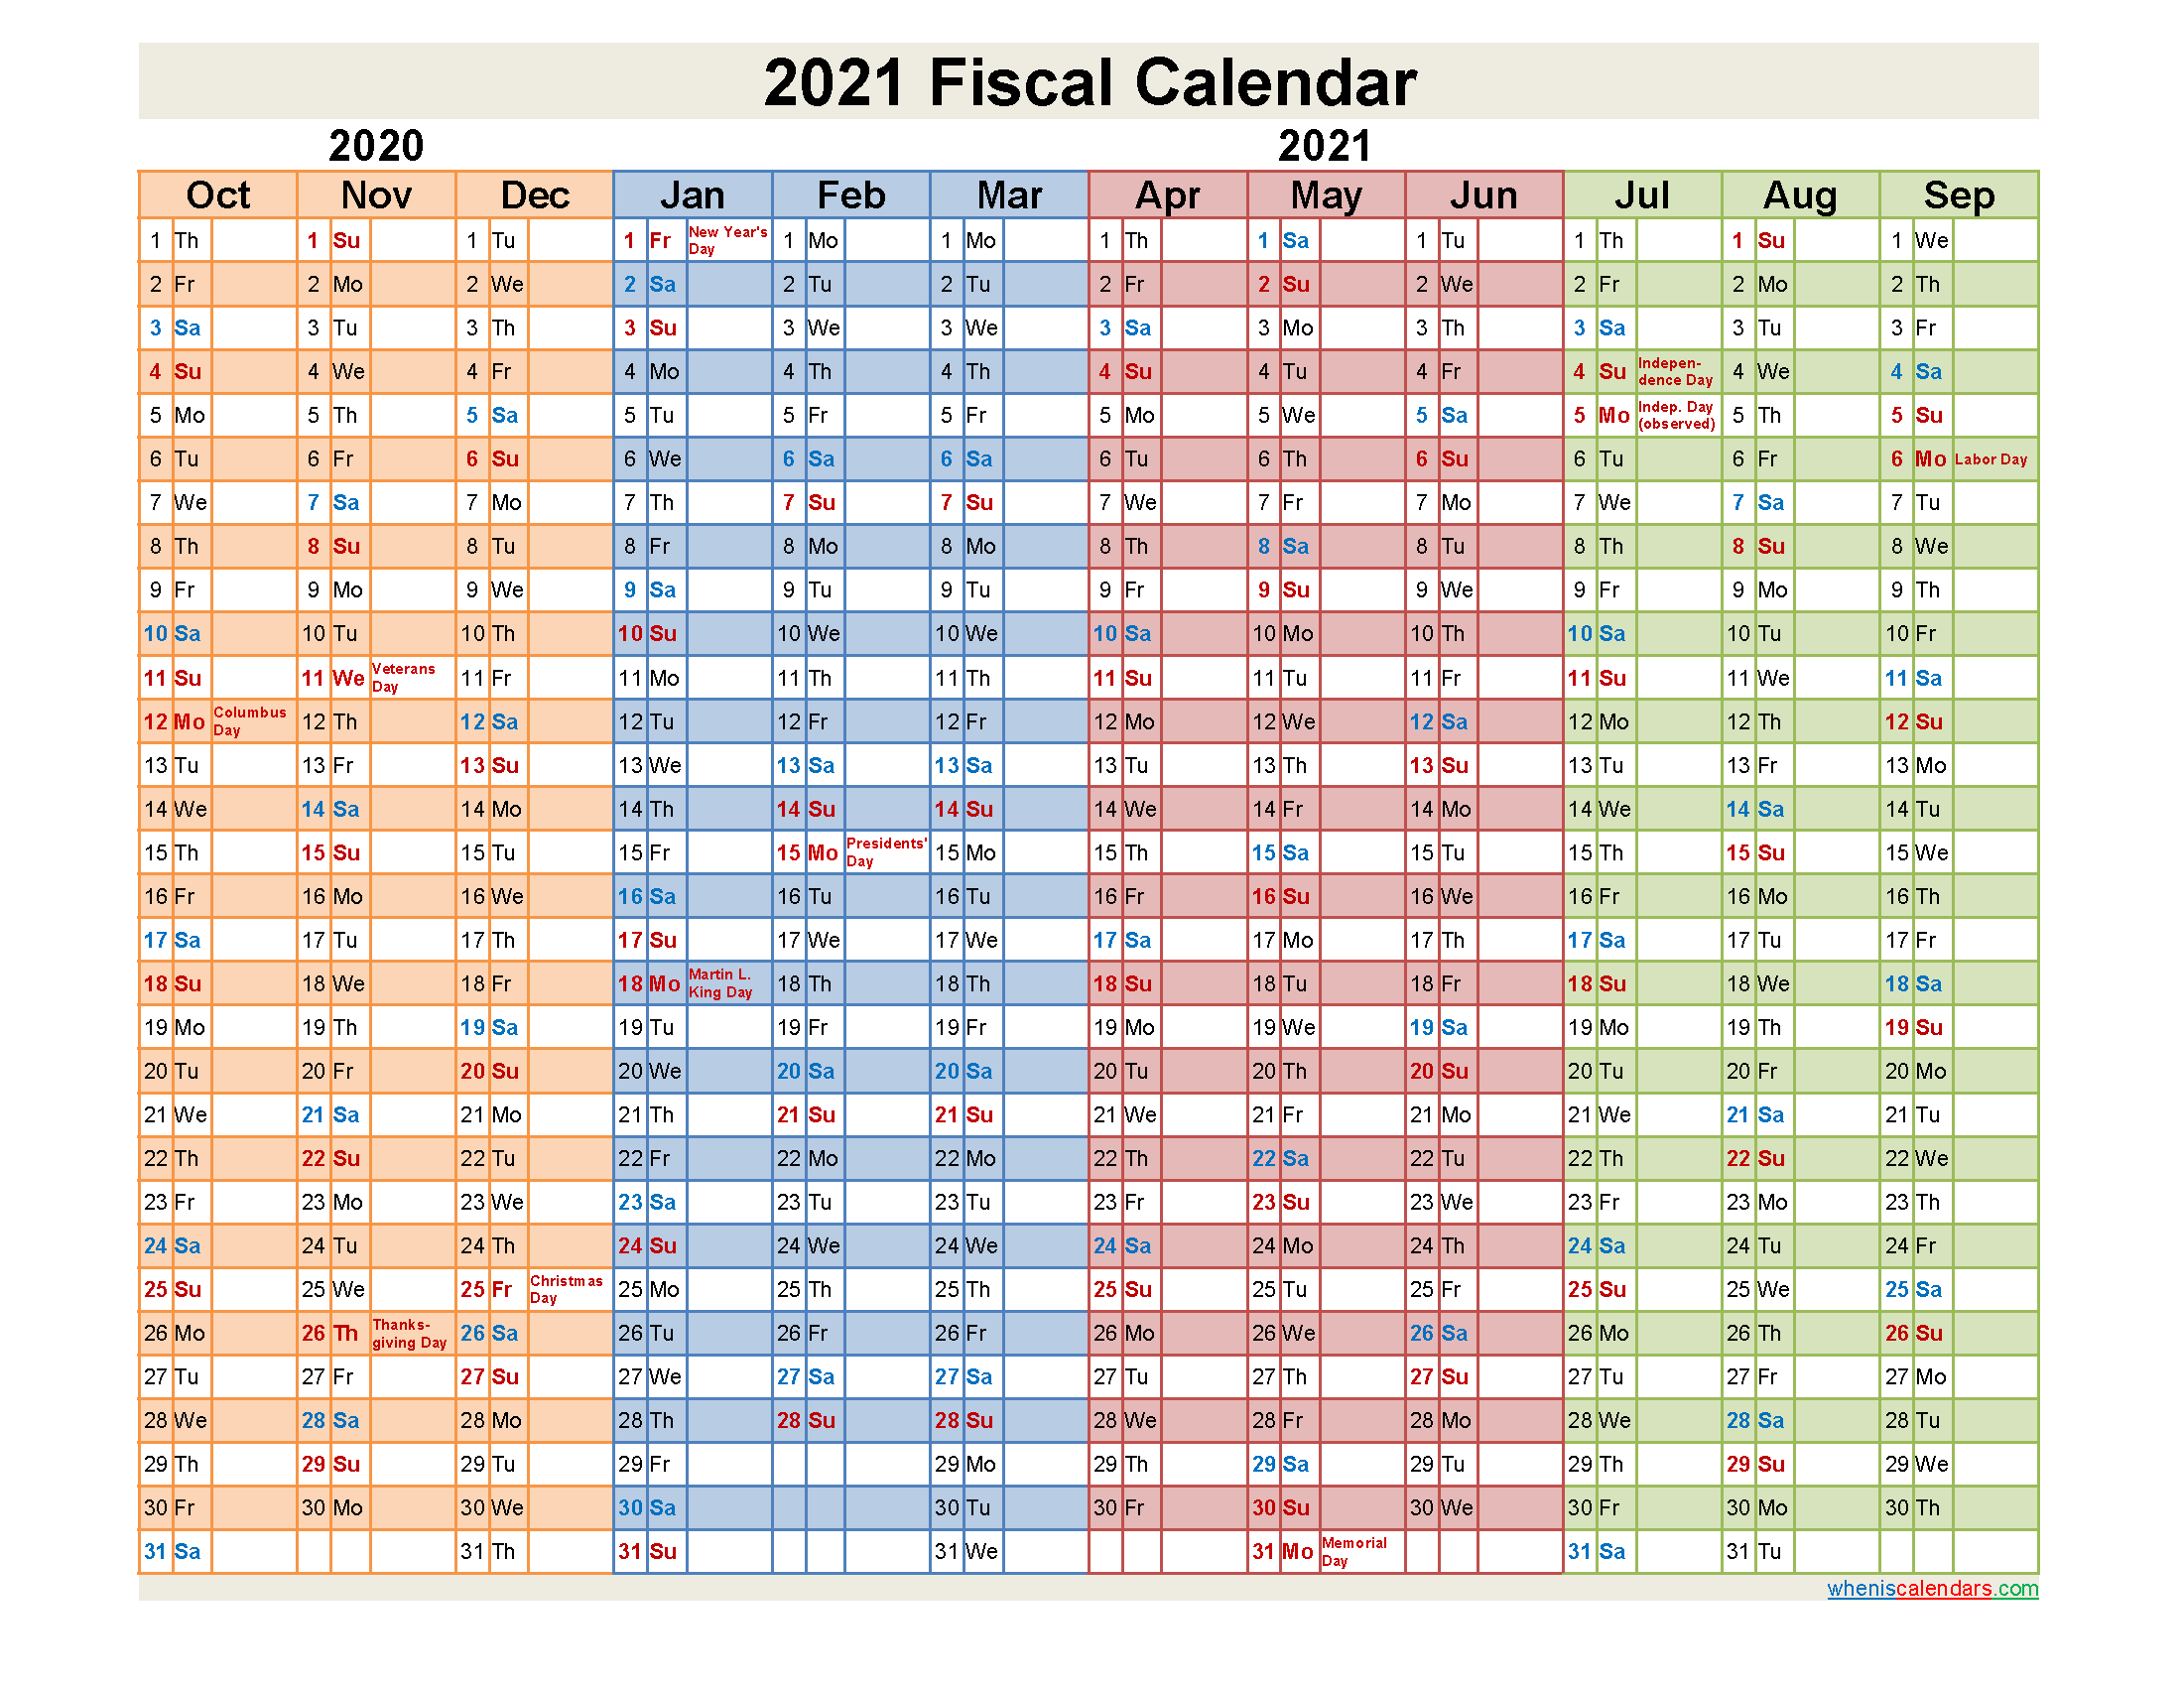 Fiscal Year 2021 Calendar Template No fiscal21y29 Free